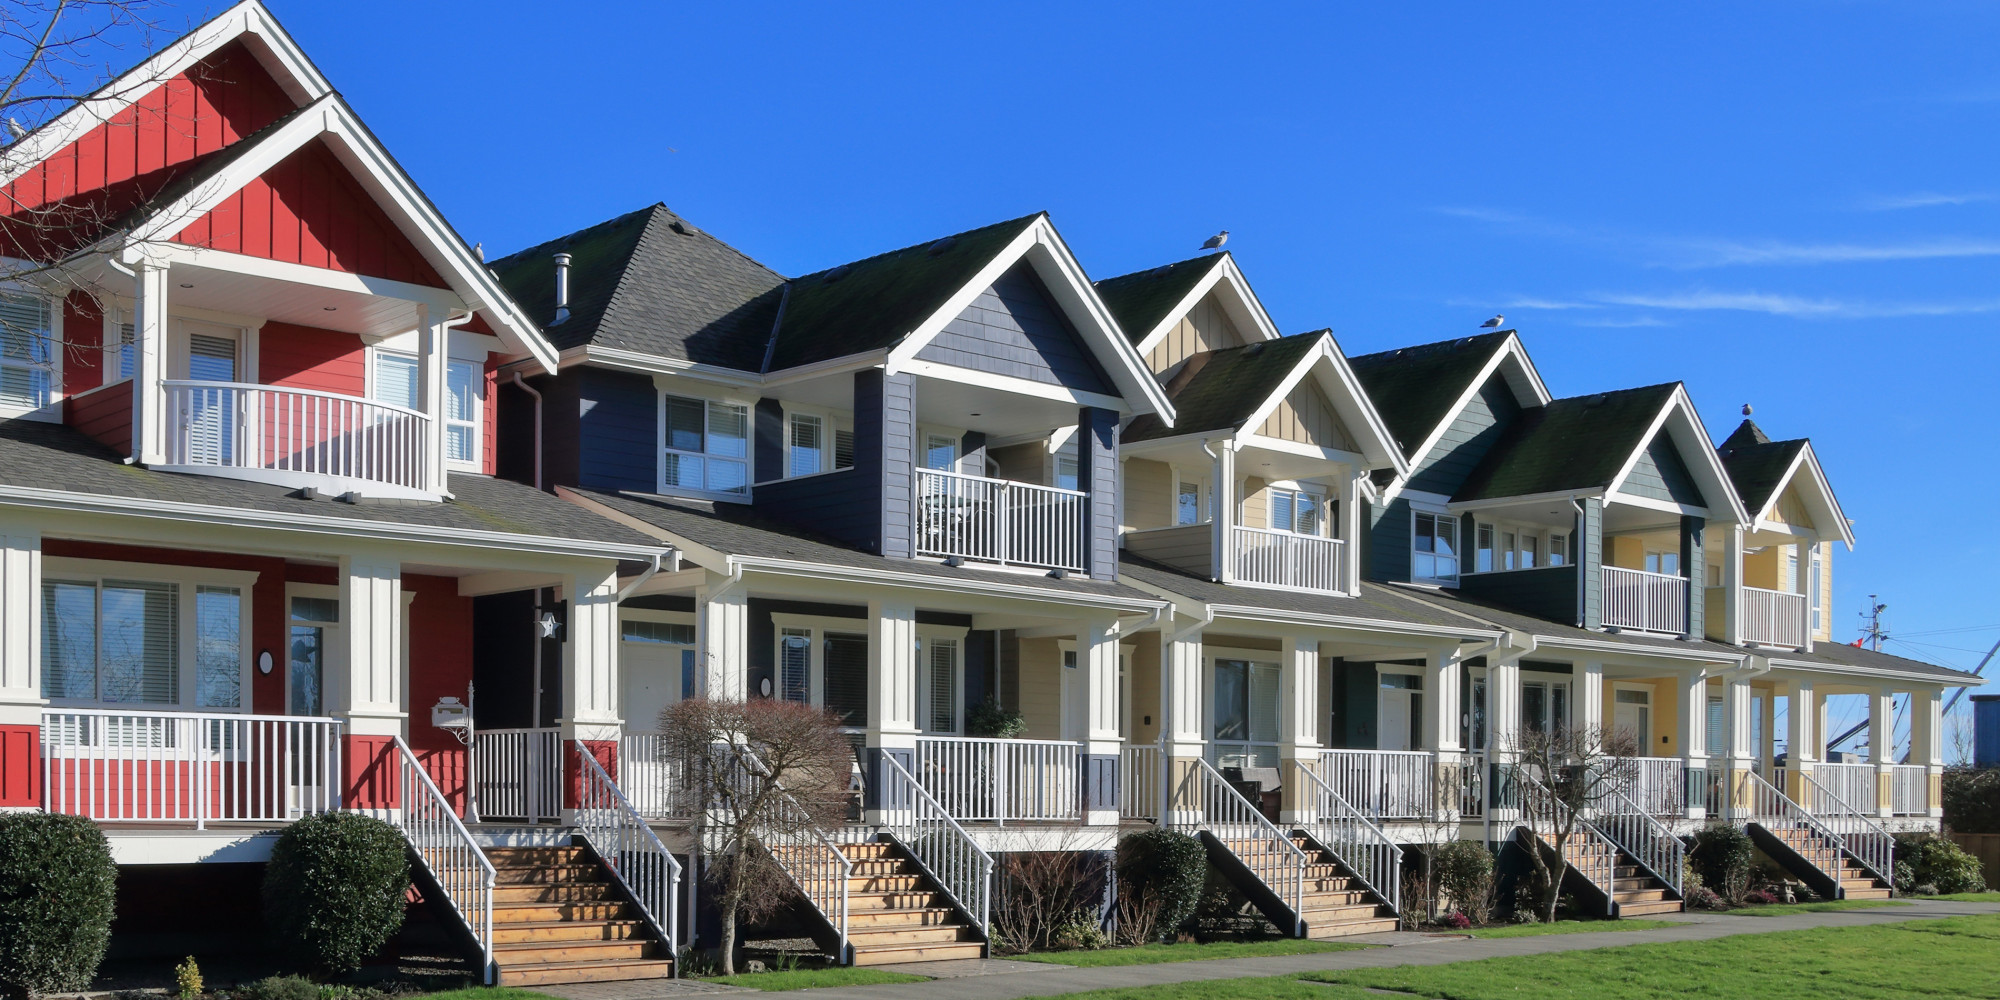 Vancouver, Toronto Real Estate Sales Are Slowing. Prices ...